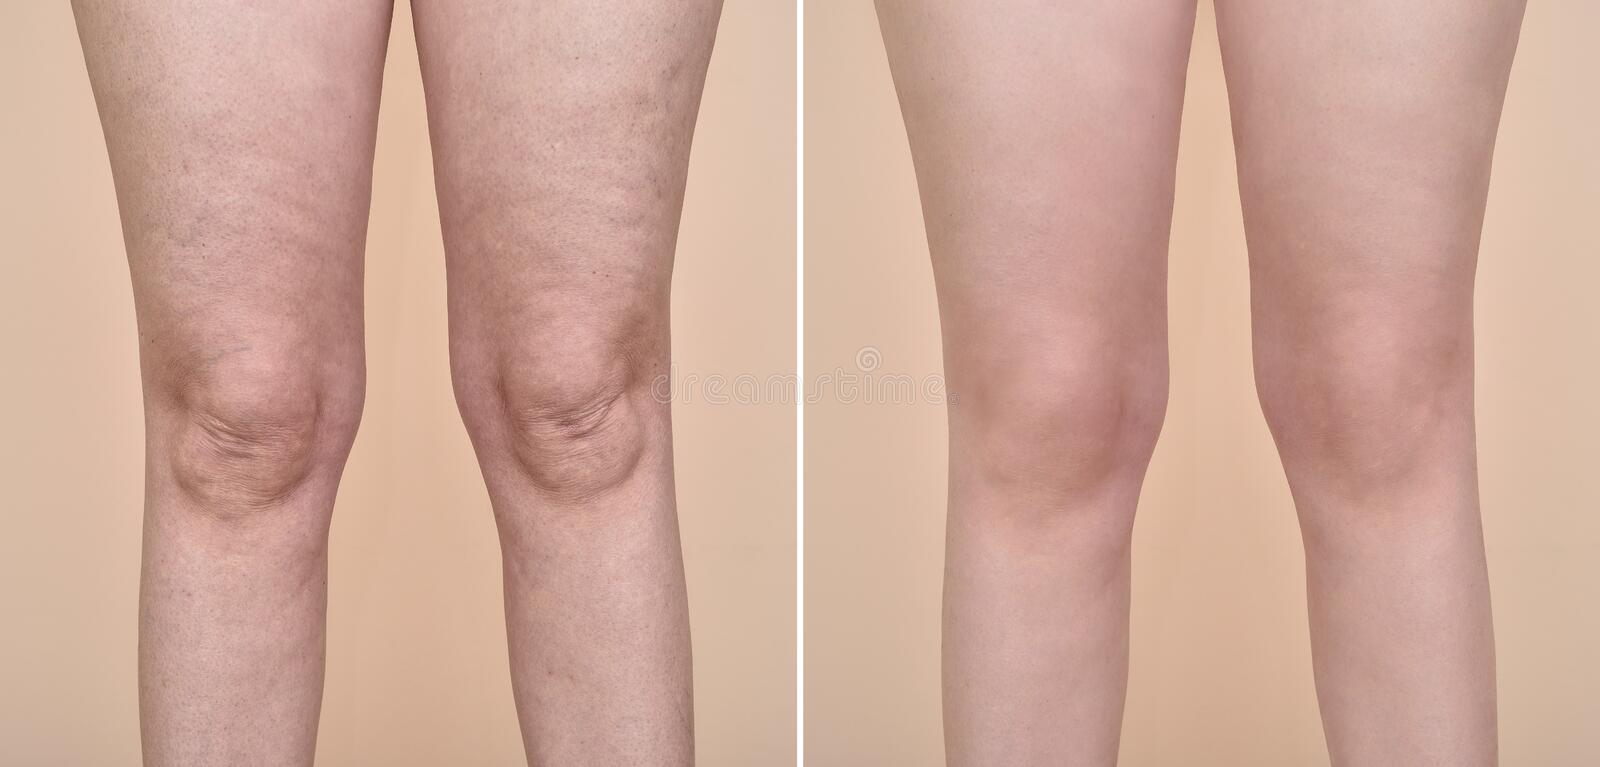 Vrouw before and after cellulite royalty-vrije stock afbeeldingen